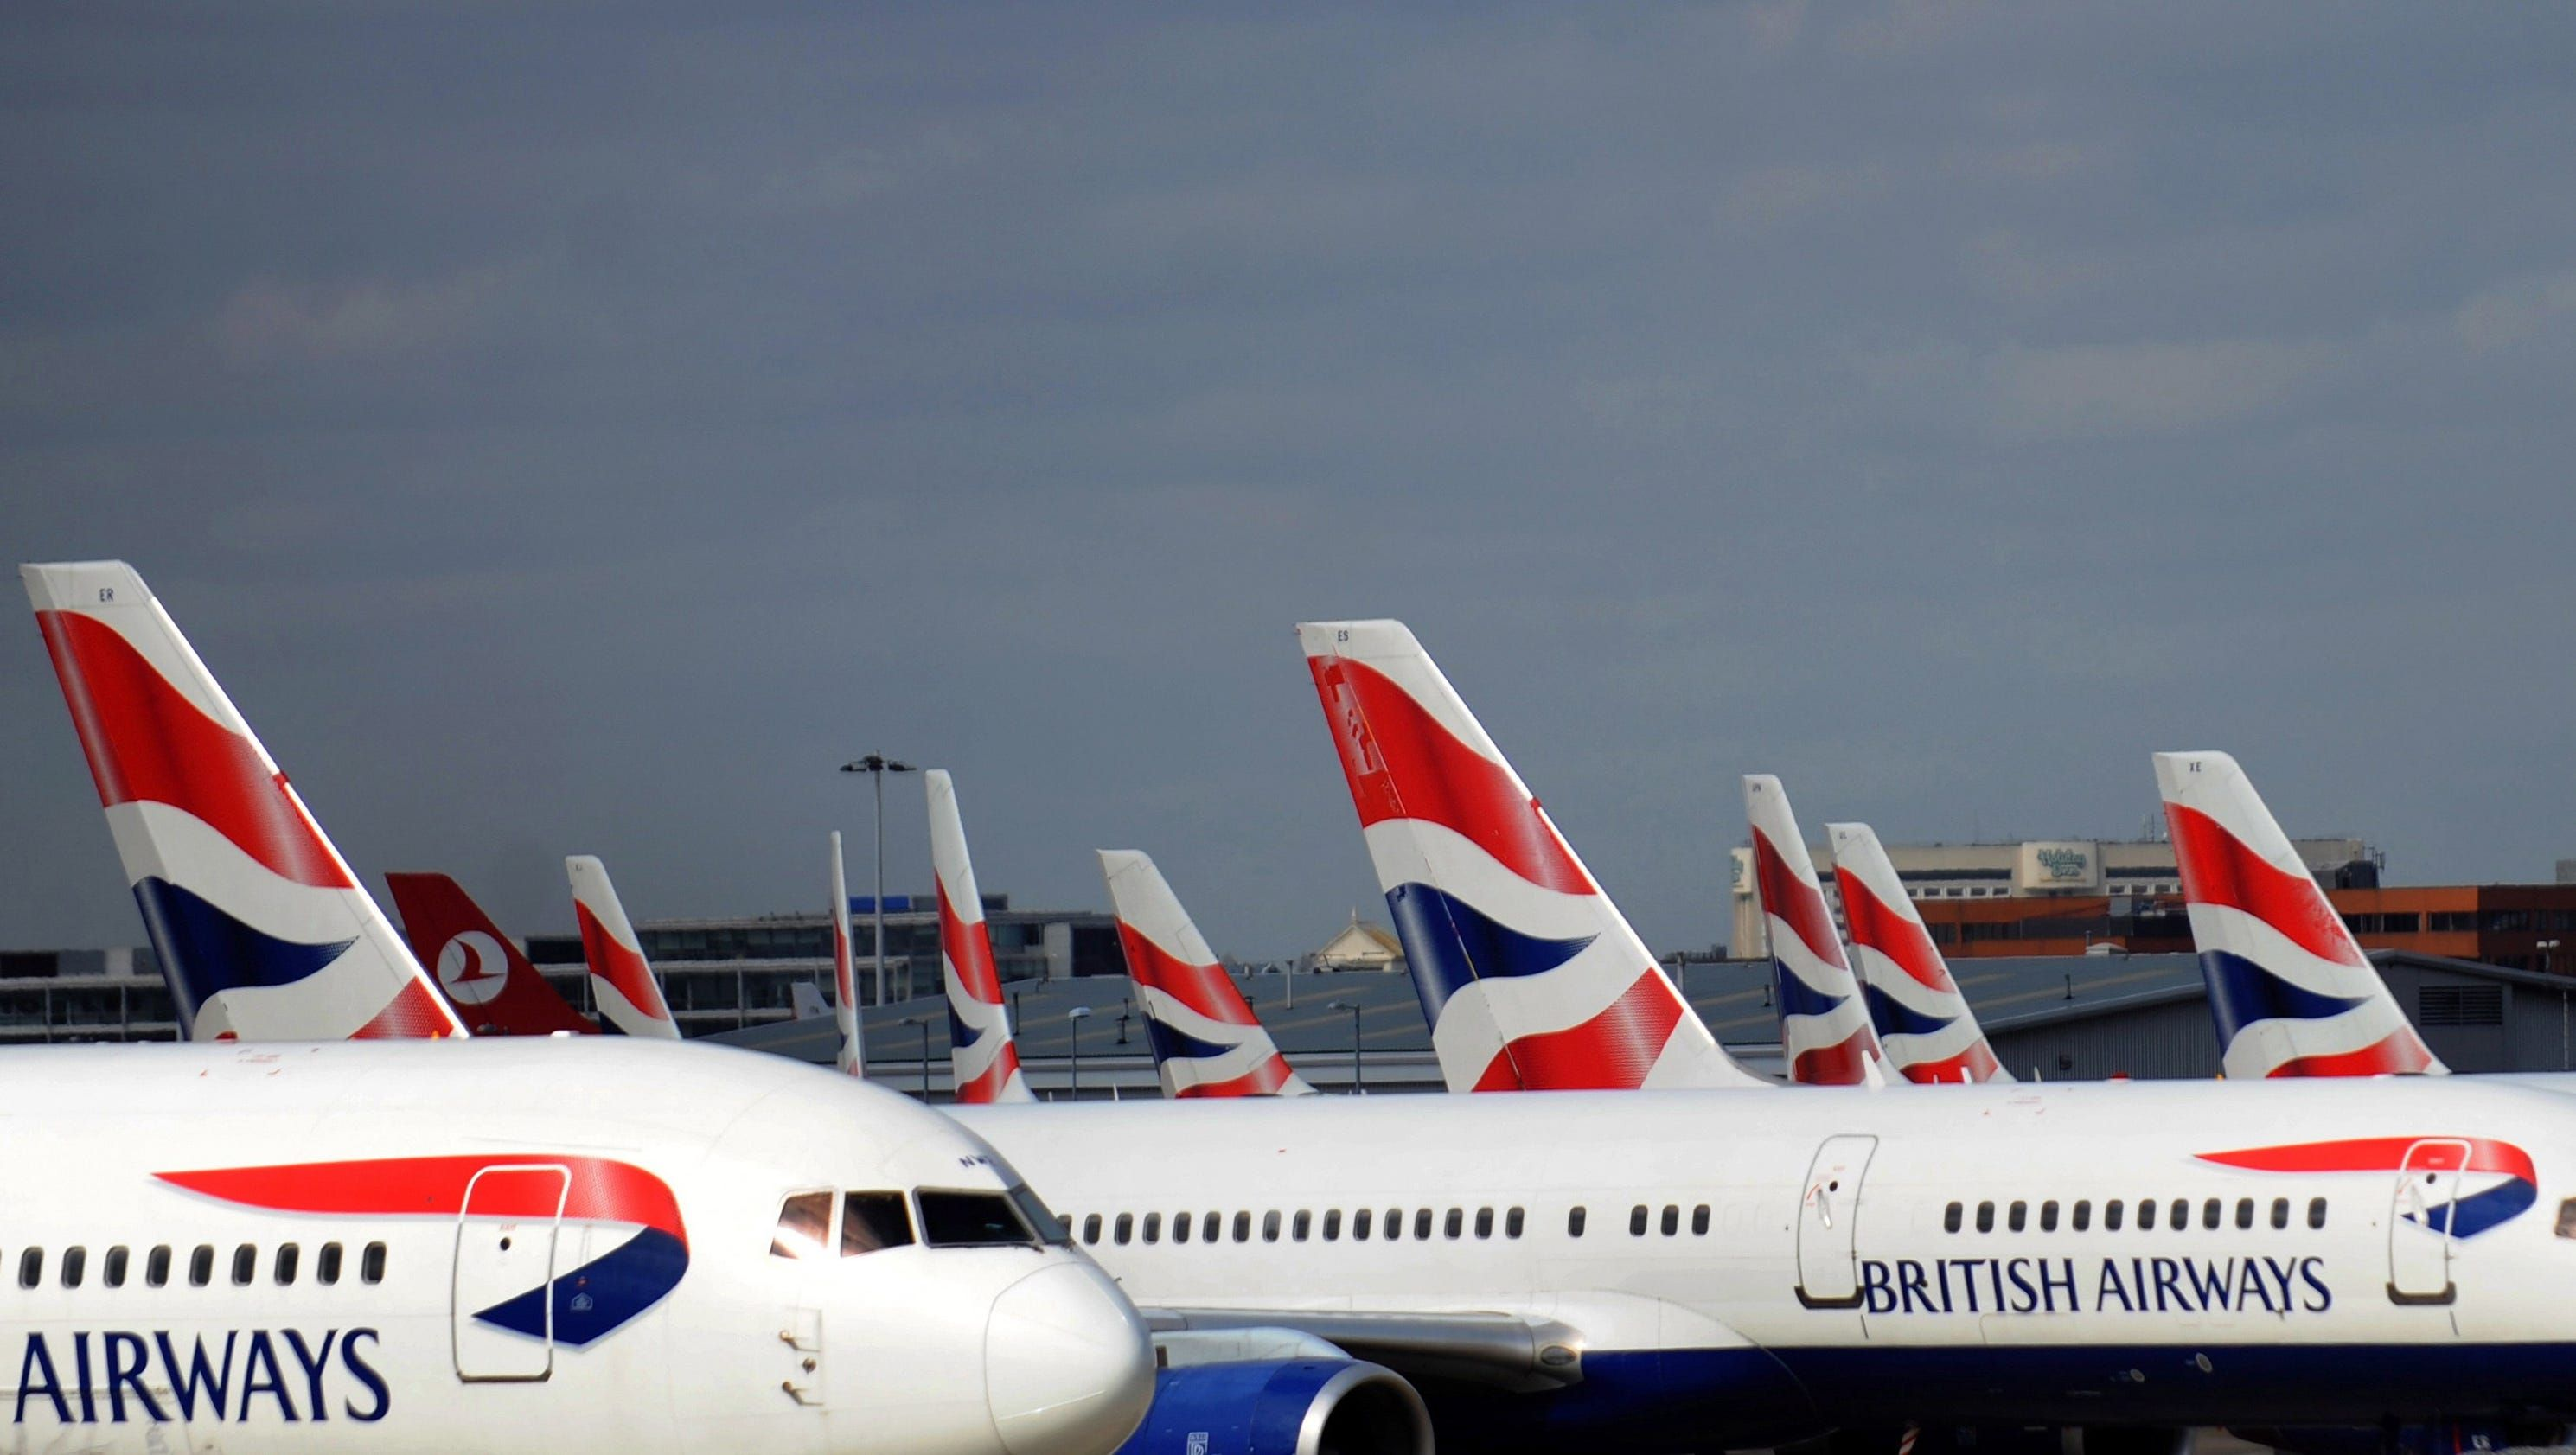 3 airliners last year nearly missed colliding with drones near Heathrow